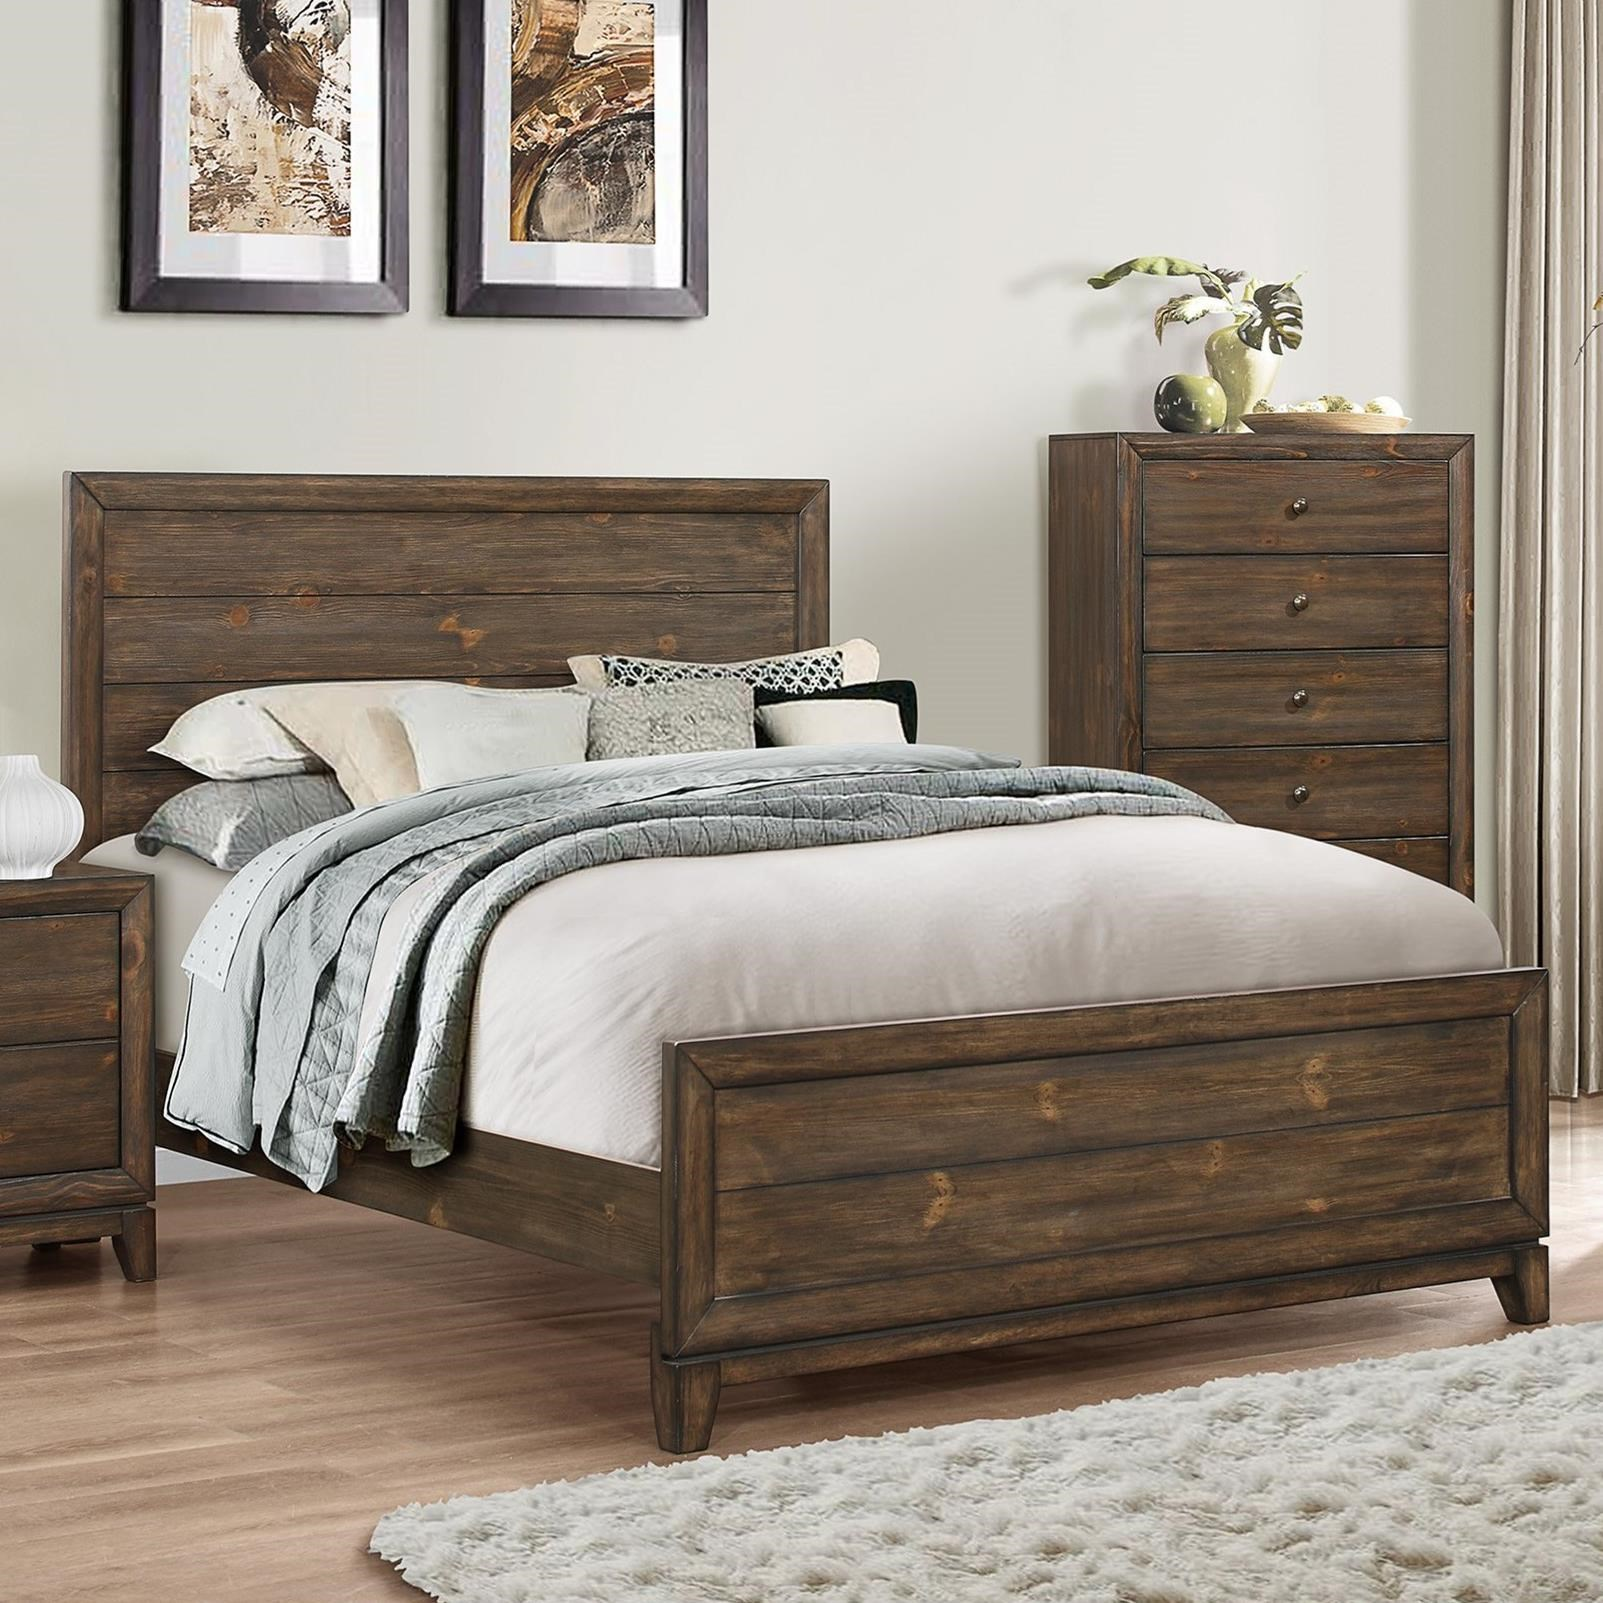 Crown Mark Rhone King Headboard and Footboard Bed - Item Number: B8700-K-HBFB+KQ-RAIL